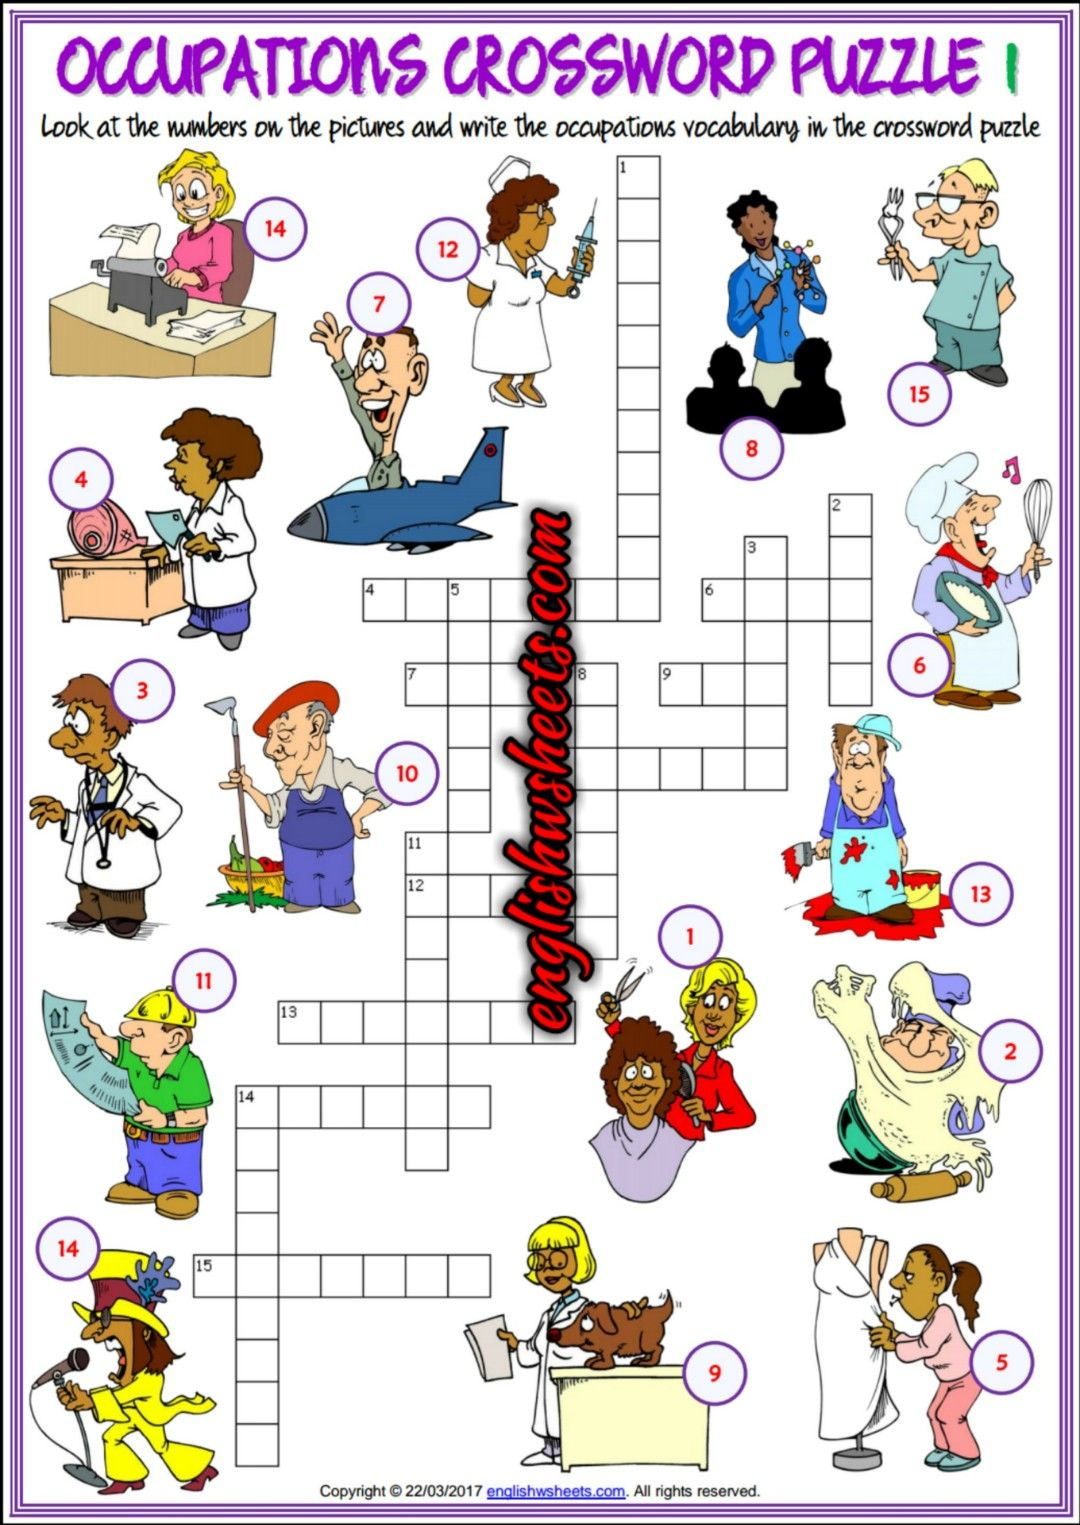 Jobs Occupations Professions Esl Printable Crossword